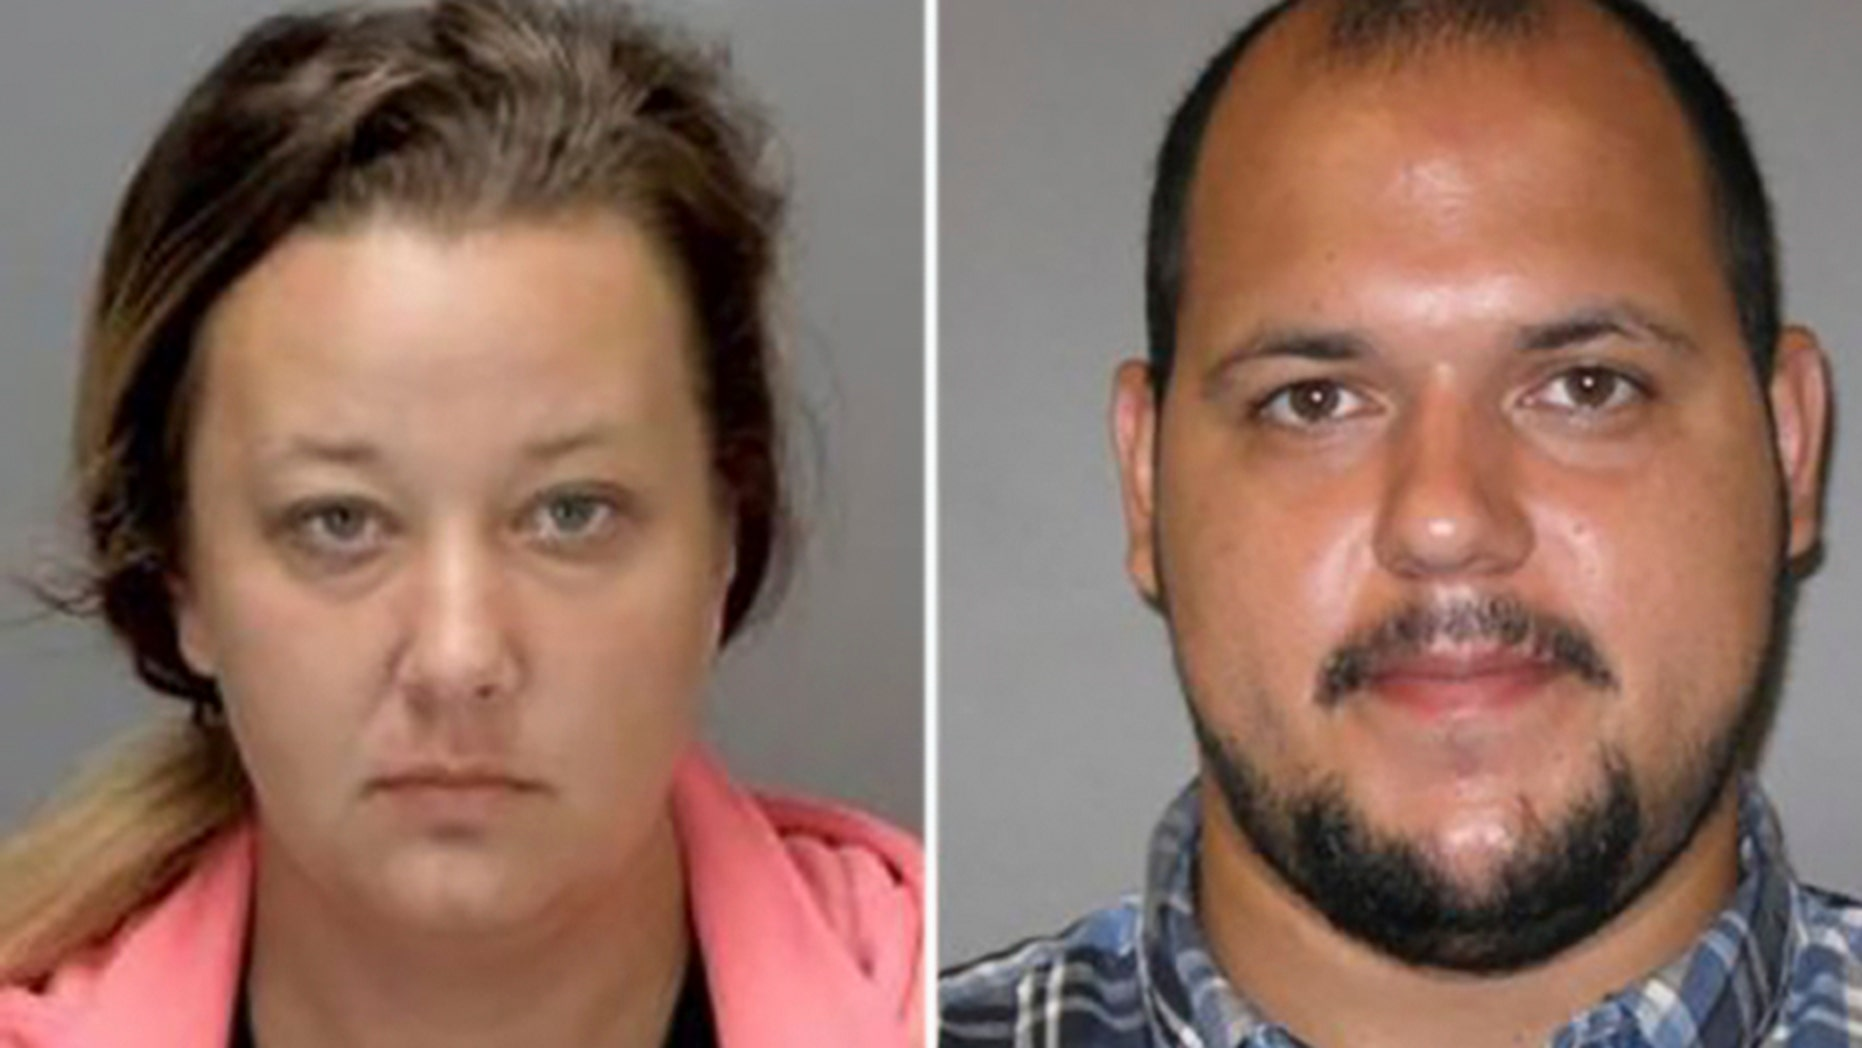 Yenier Conde, right, and Sarah Conde, left, were charged with 10 counts of first and second degree child abuse and unlawful imprisonment on Friday after investigators said they routinely physically and verbally abused their five children over the course of six years.